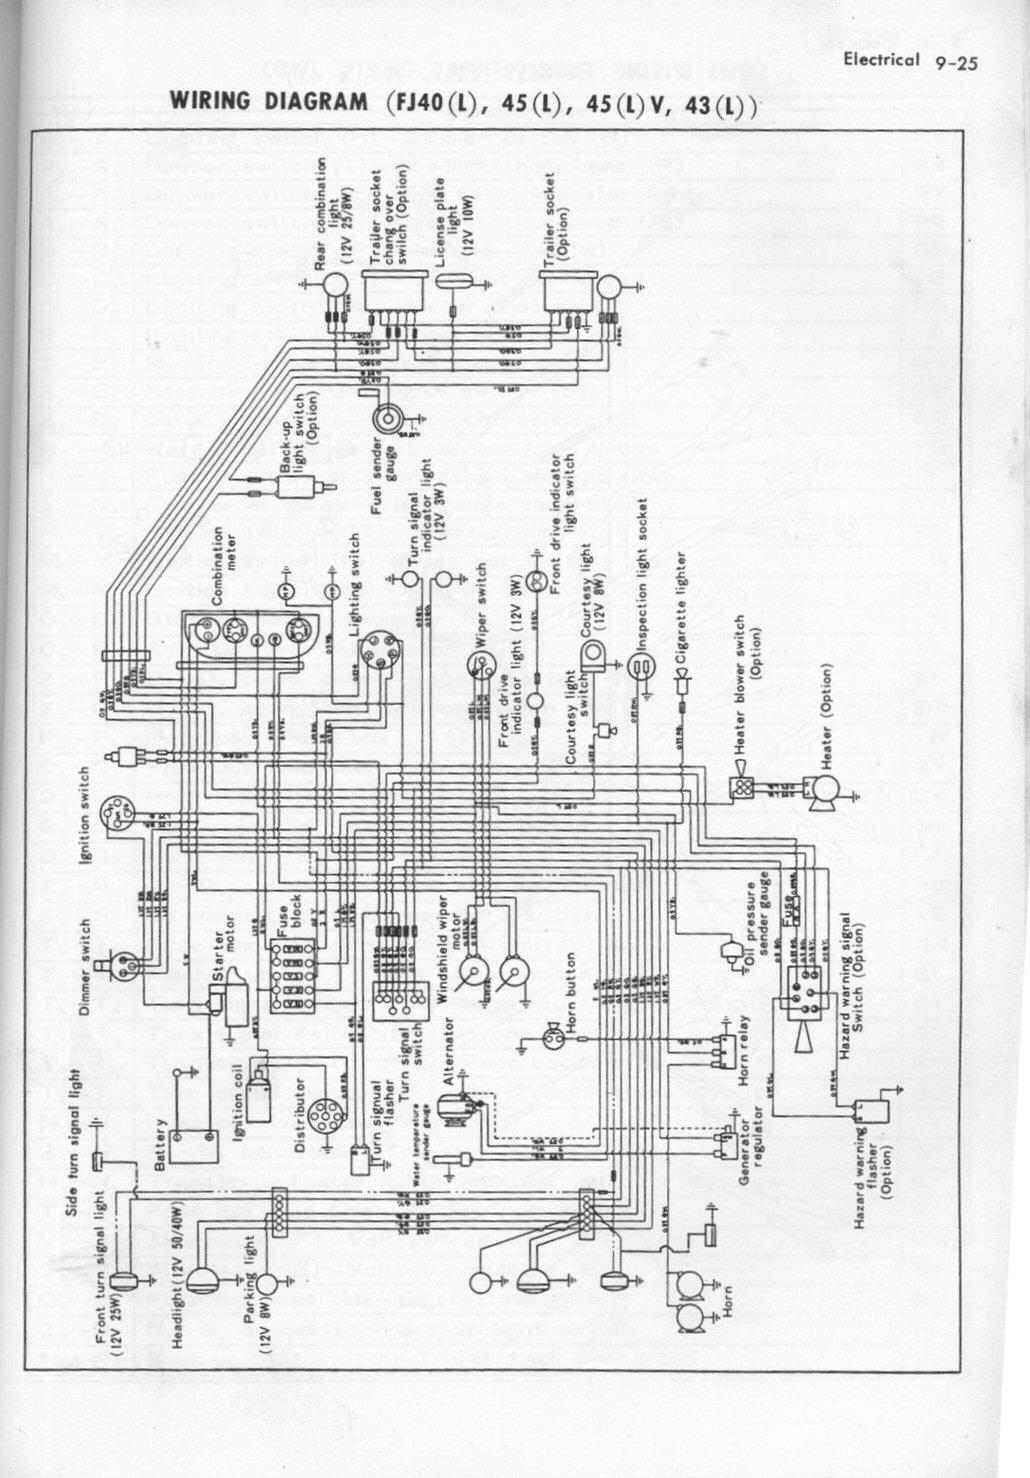 fj40 wiring harness fj40 image wiring diagram fj40 wiring harness solidfonts on fj40 wiring harness